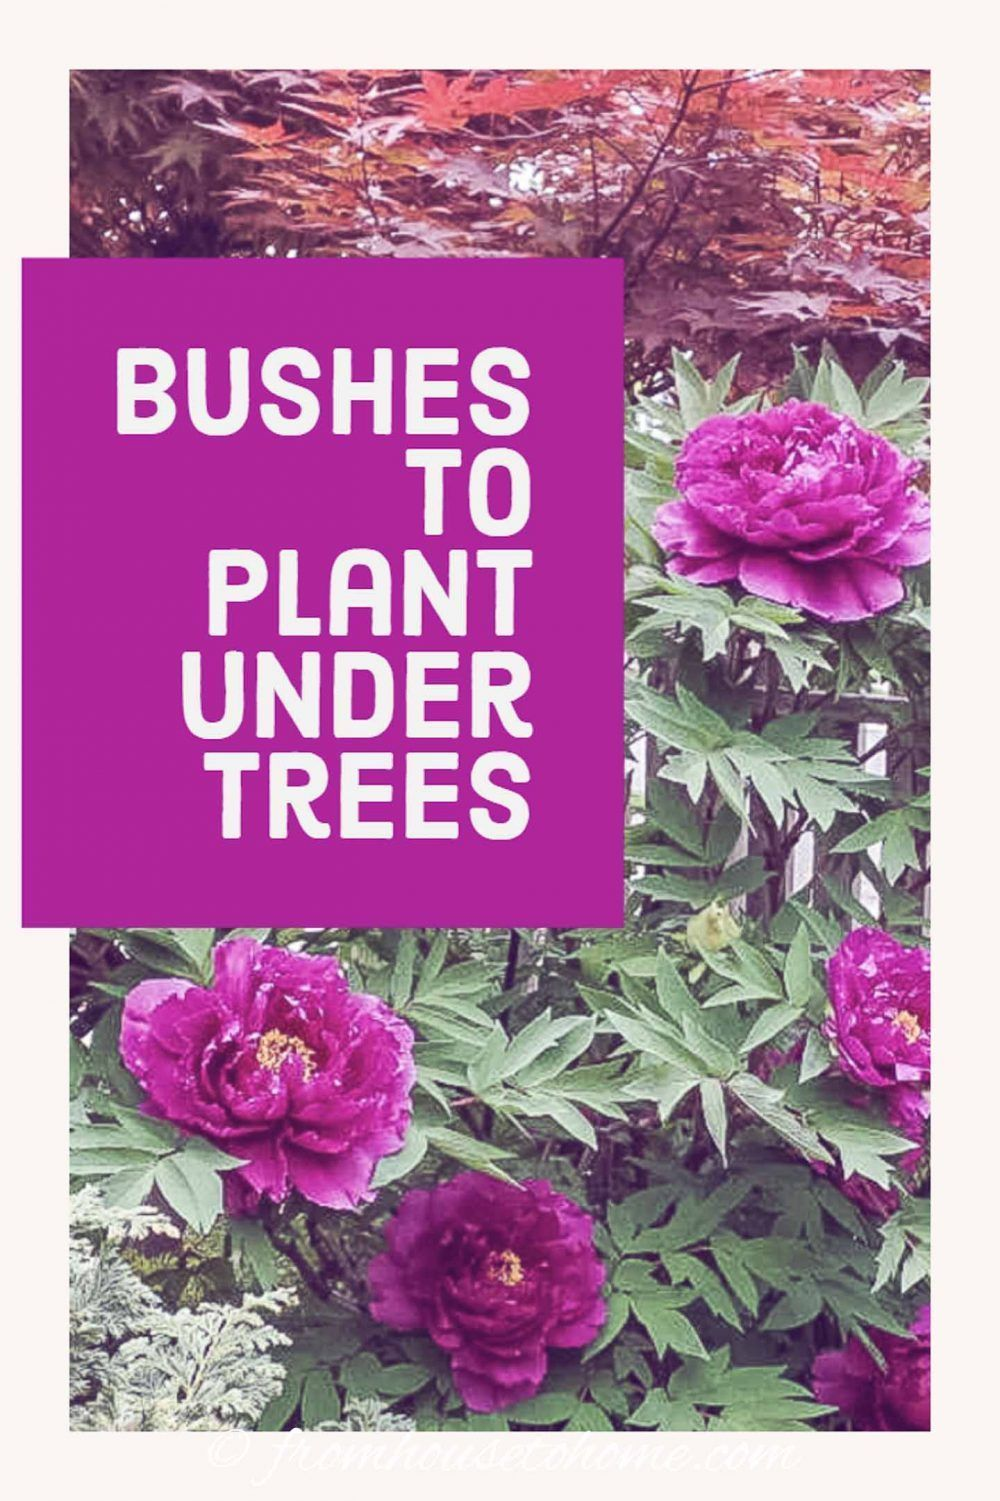 Shade Loving Shrubs: 11 Beautiful Bushes To Plant Under Trees - Gardening @ From House To Home -  This list of bushes that thrive in the shade is AWESOME! So many beautiful flowers and they are all - #beautiful #bushes #CactusFlower #ContainerGarden #FlowersGarden #gardening #home #House #Irises #loving #OrnamentalGrasses #PerennialGardens #plant #shade #ShadePerennials #ShadePlants #shrubs #Trees #under